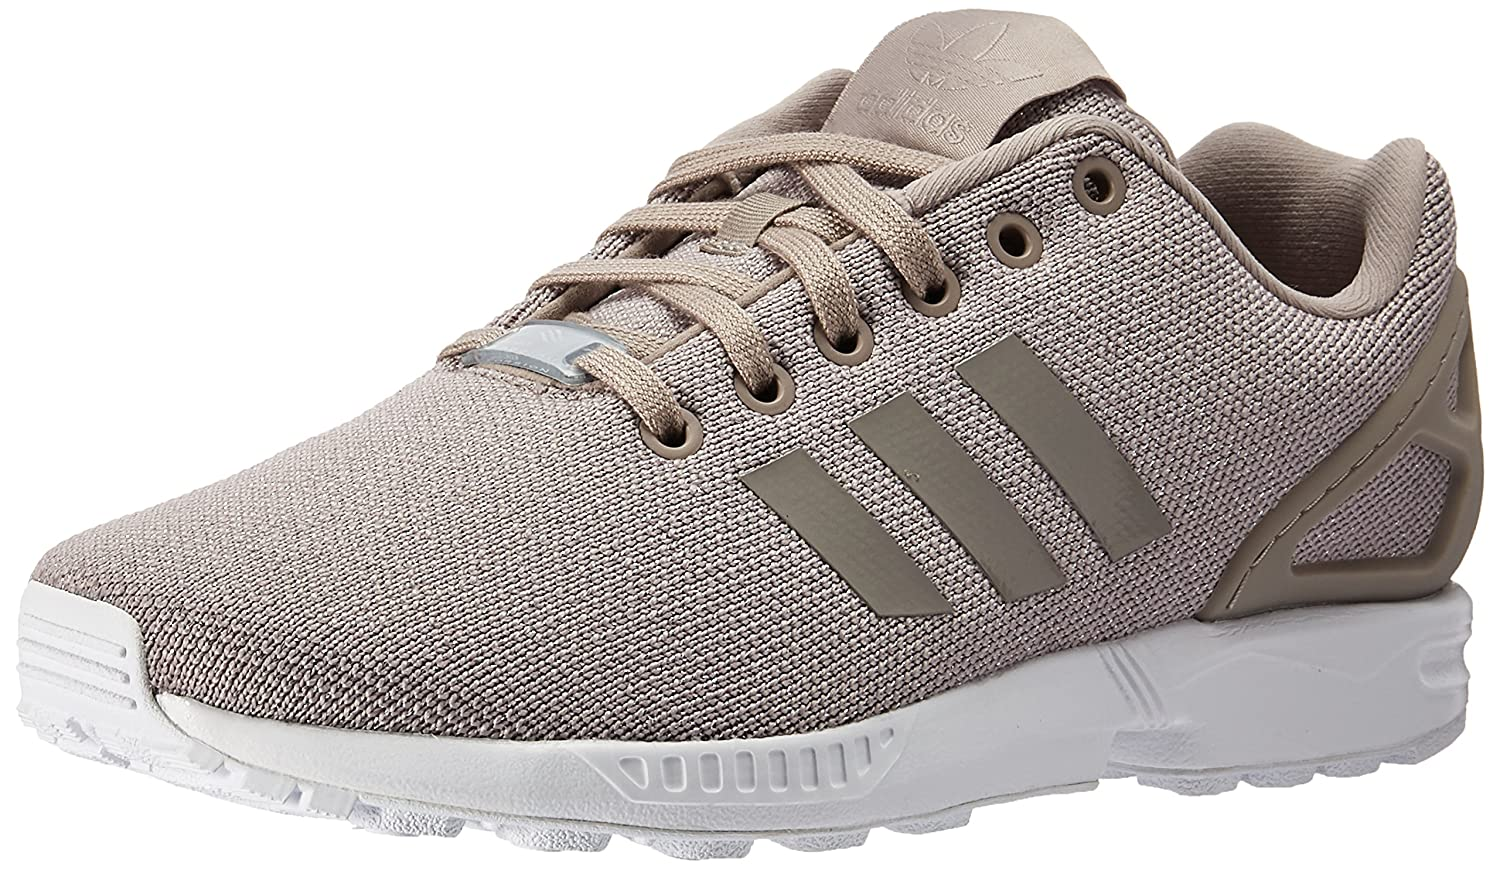 adidas Originals Women's ZX Flux W Running Shoe Grey/Vapour B06XX6YF3J 7 B(M) US|Vapour Grey/Vapour Shoe Grey/Silver Metallic f899d4